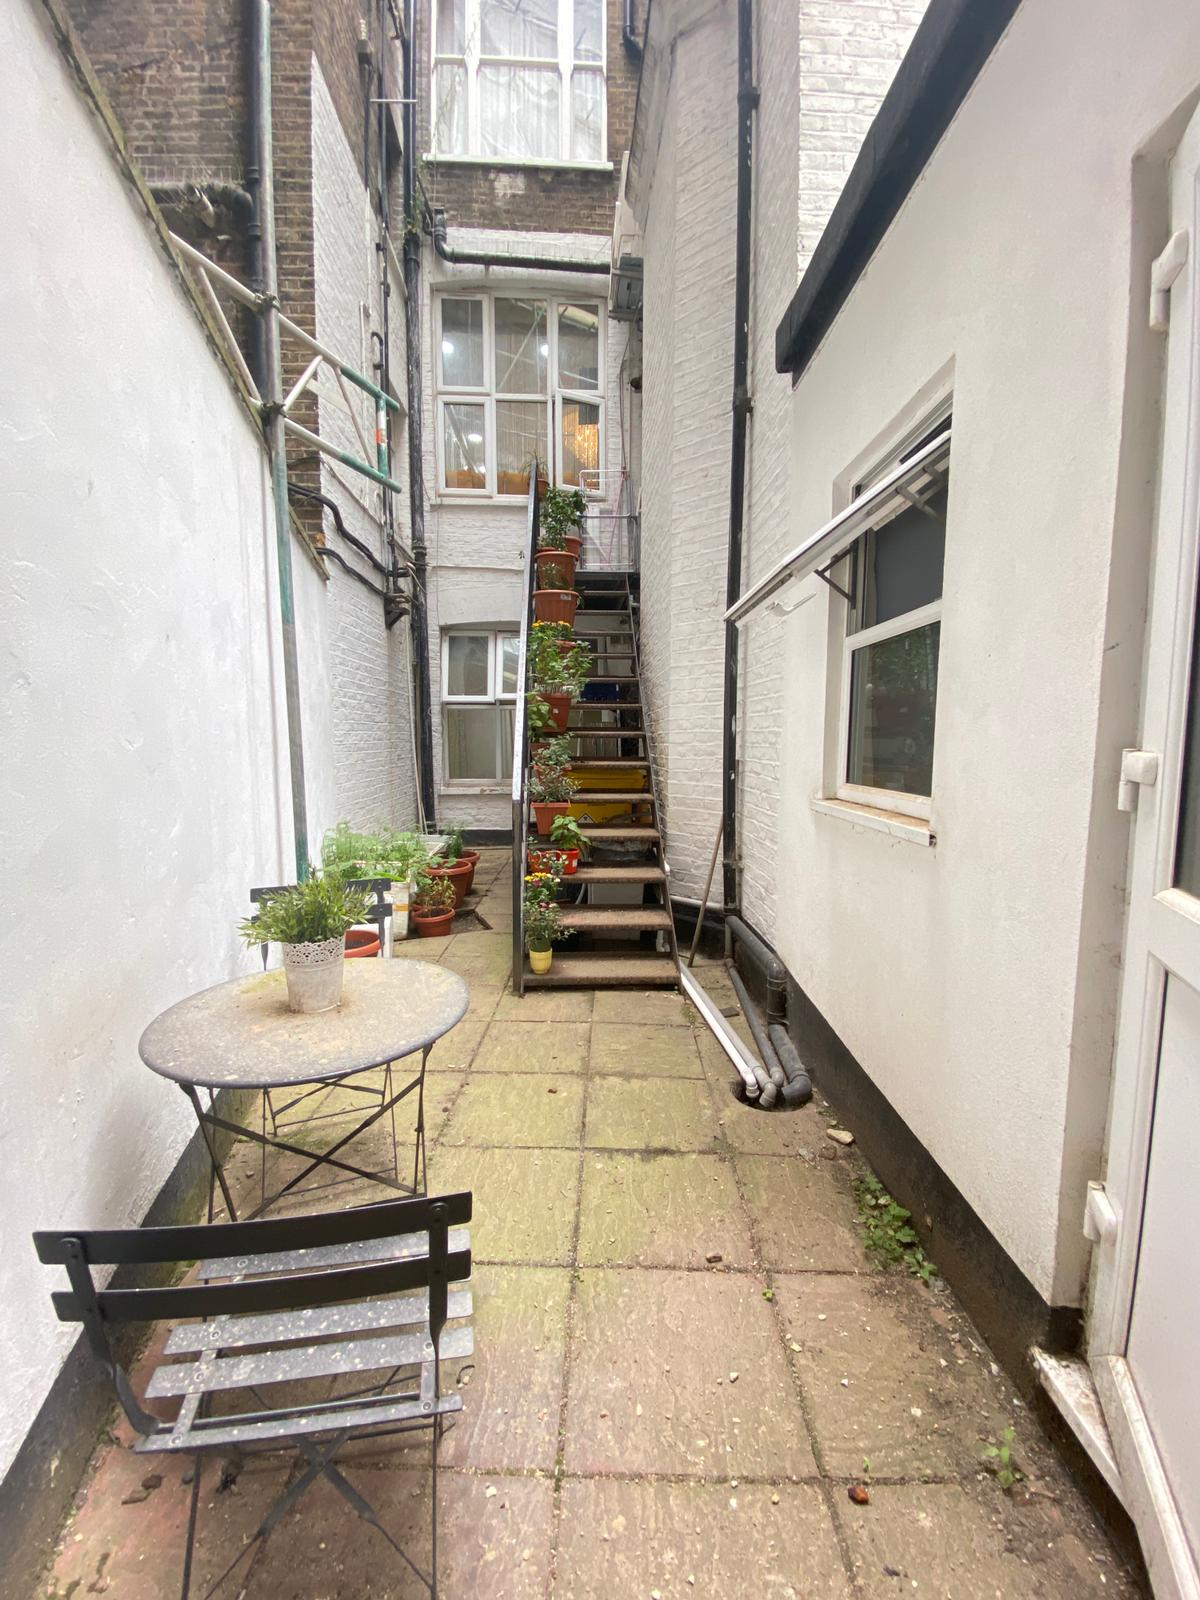 3 bed flat to rent in North End Road, West Kensington, London, W14